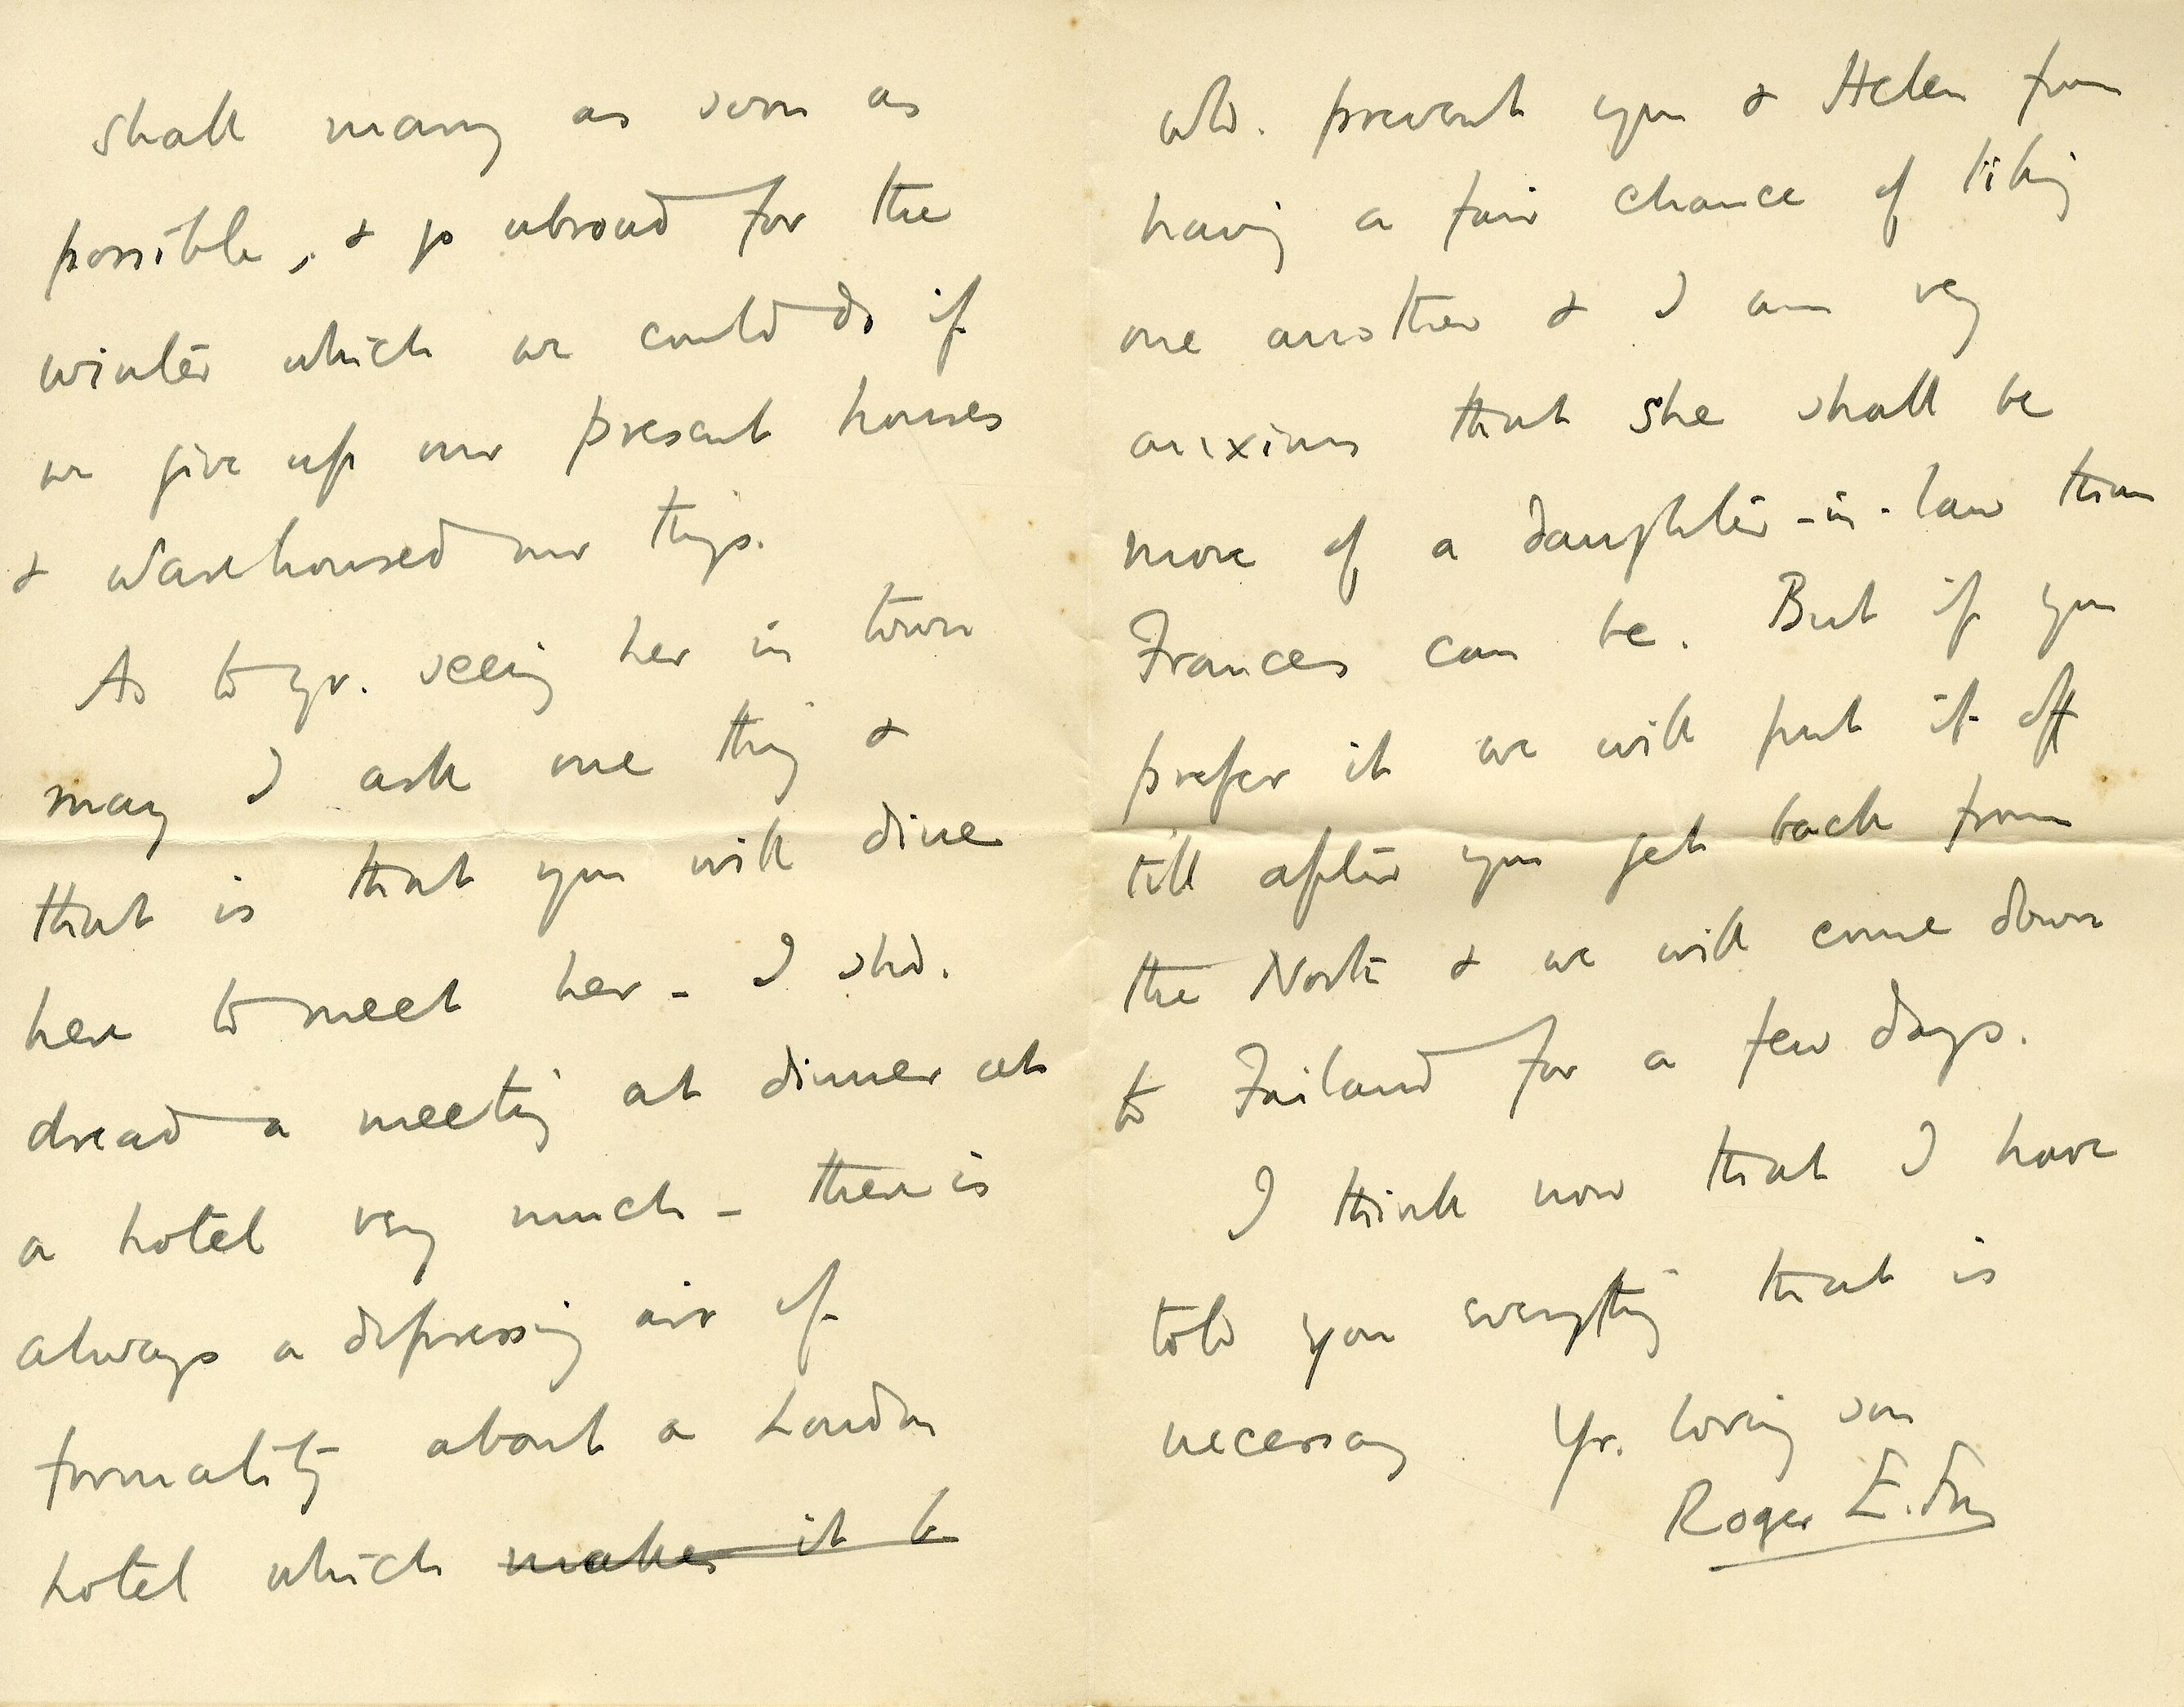 Letter from Roger Fry to his mother, 1896, concerning Helen Coombe. [REF/3/57/23]